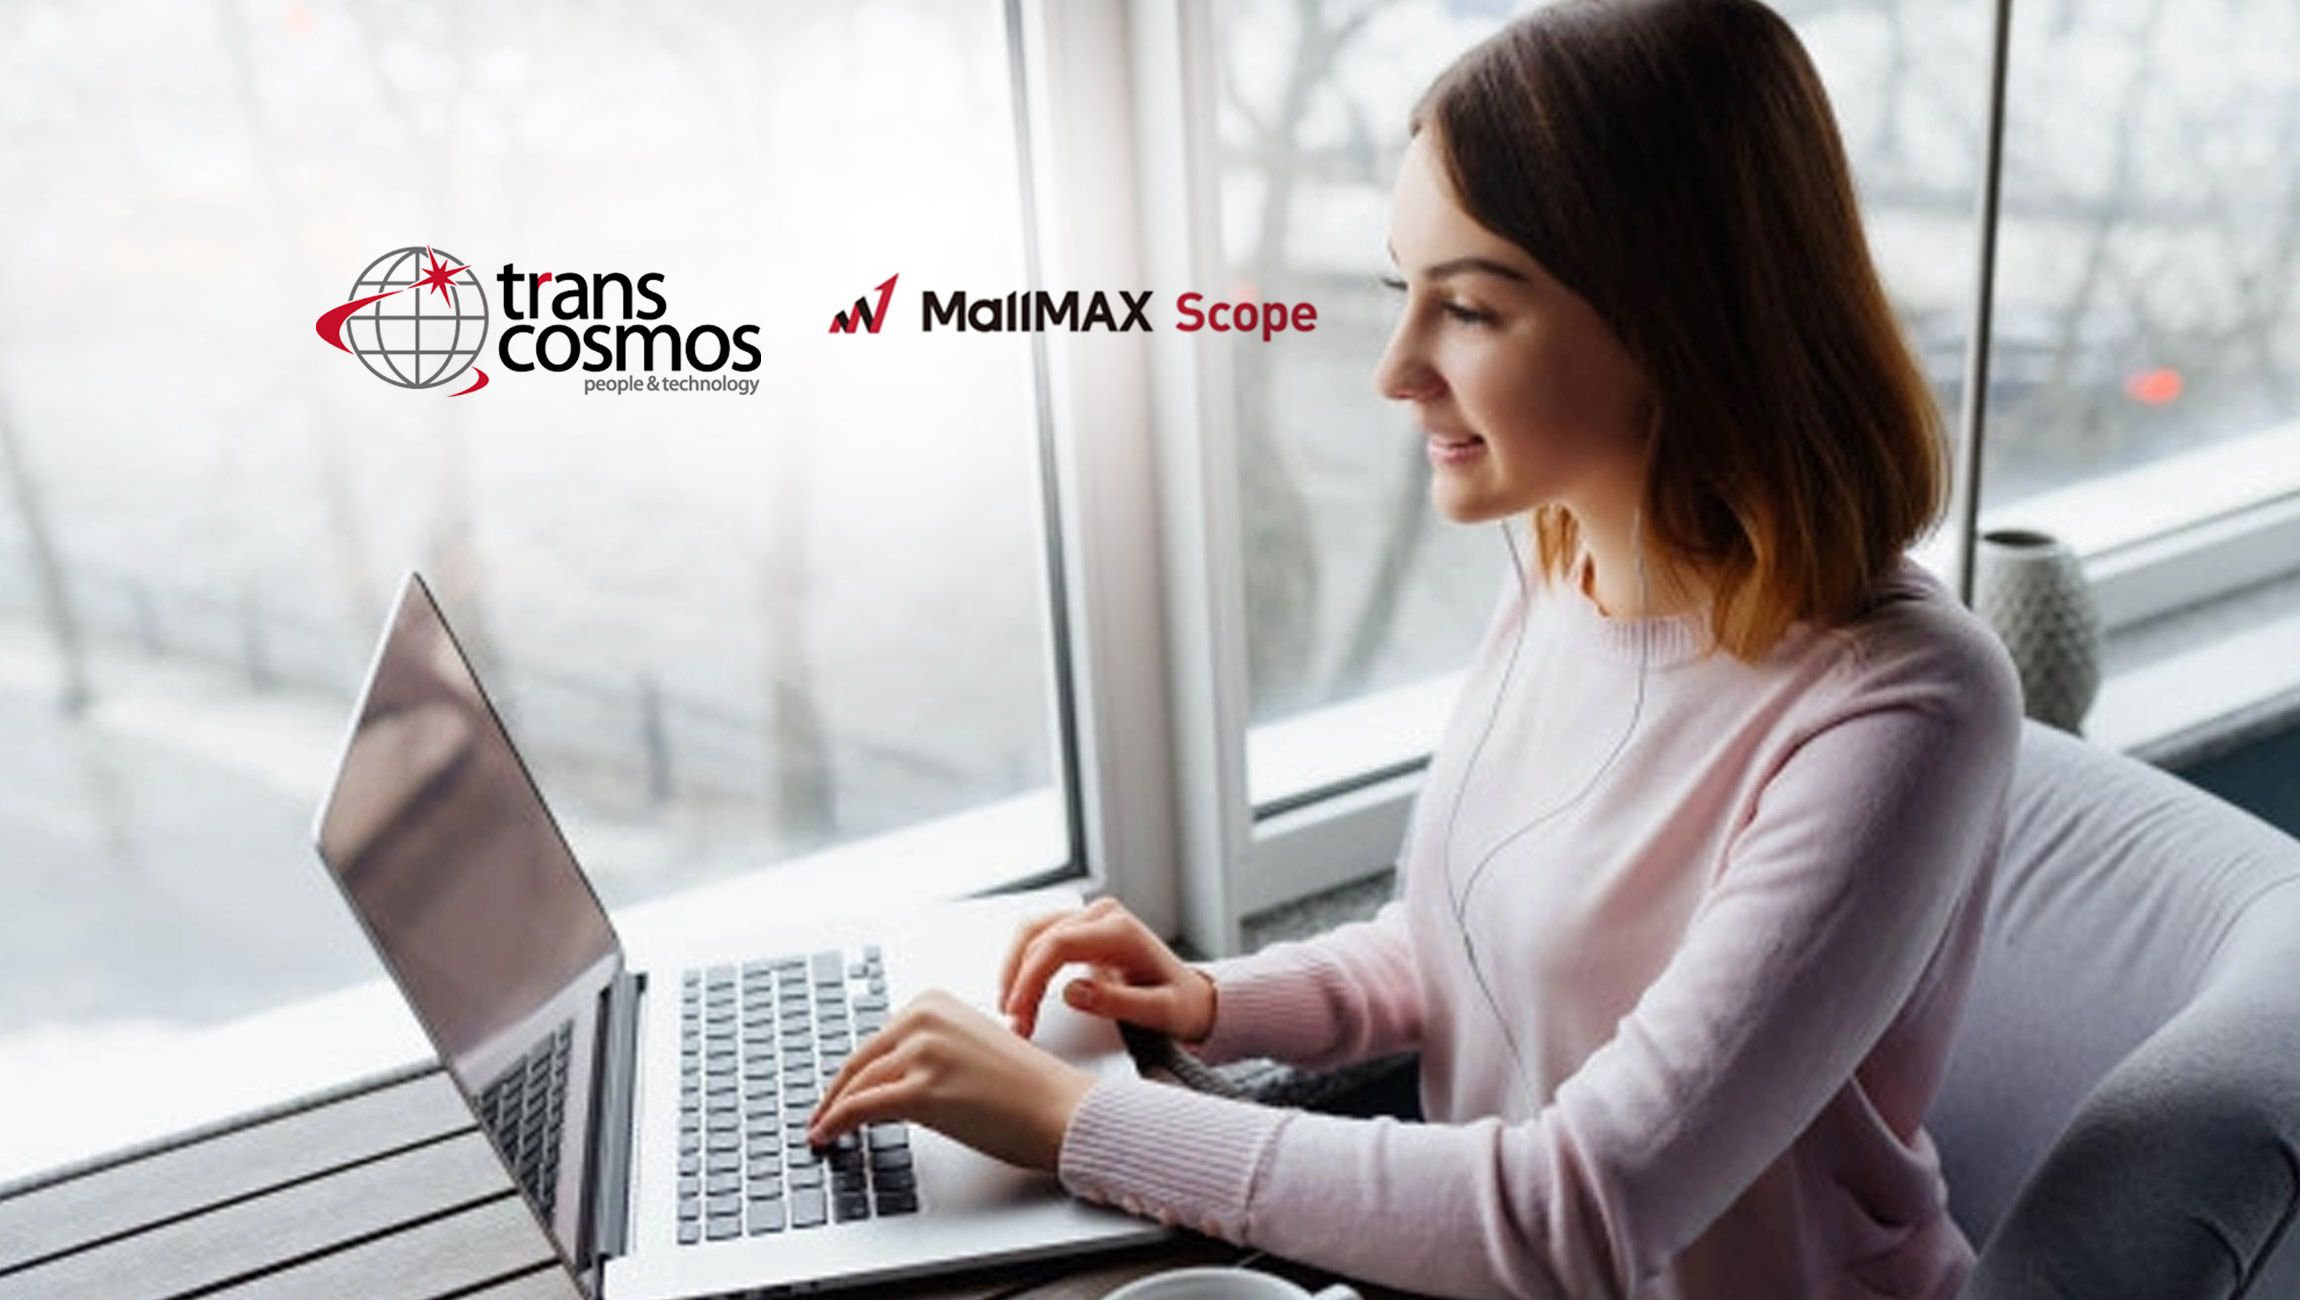 transcosmos-releases-MallMAX-Scope_-its-proprietary-diagnostics-_-analytics-services-that-help-maximize-sales-on-online-shopping-malls